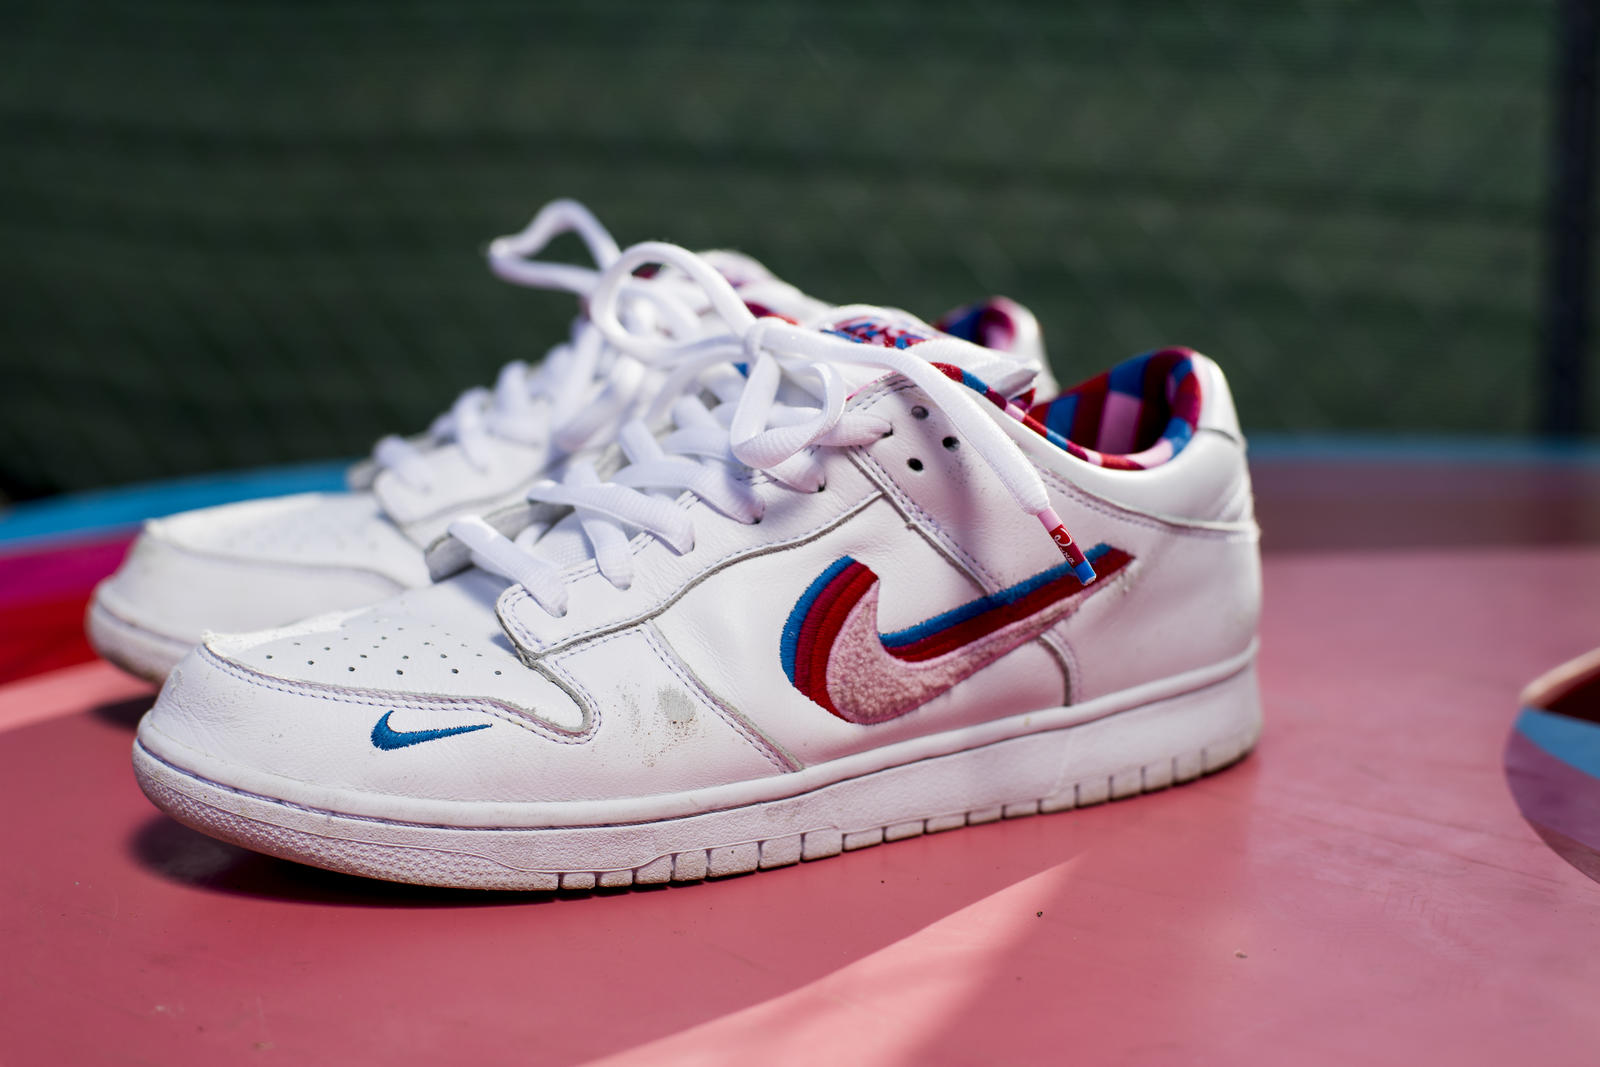 Nike SB x Parra Dunk and Blazer Official Images and Release Date 6